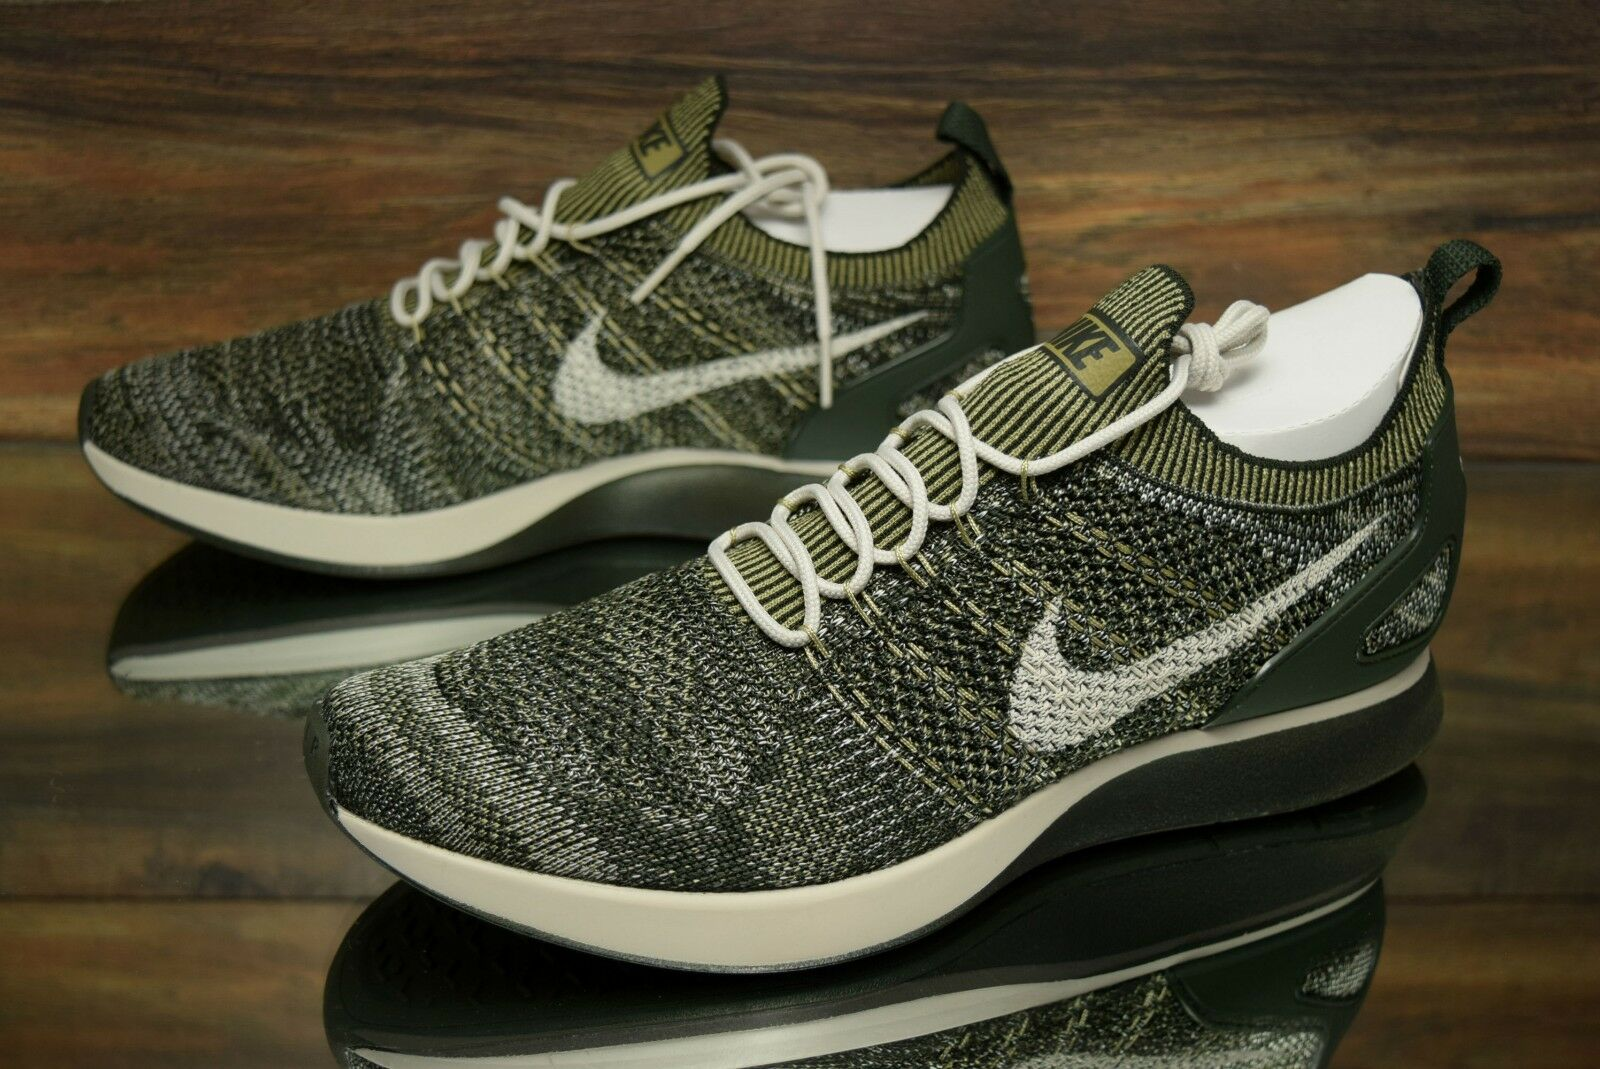 Nike Air Zoom Mariah Flyknit Racer Green 918264-301 Men's Shoes Size 10.5, 12